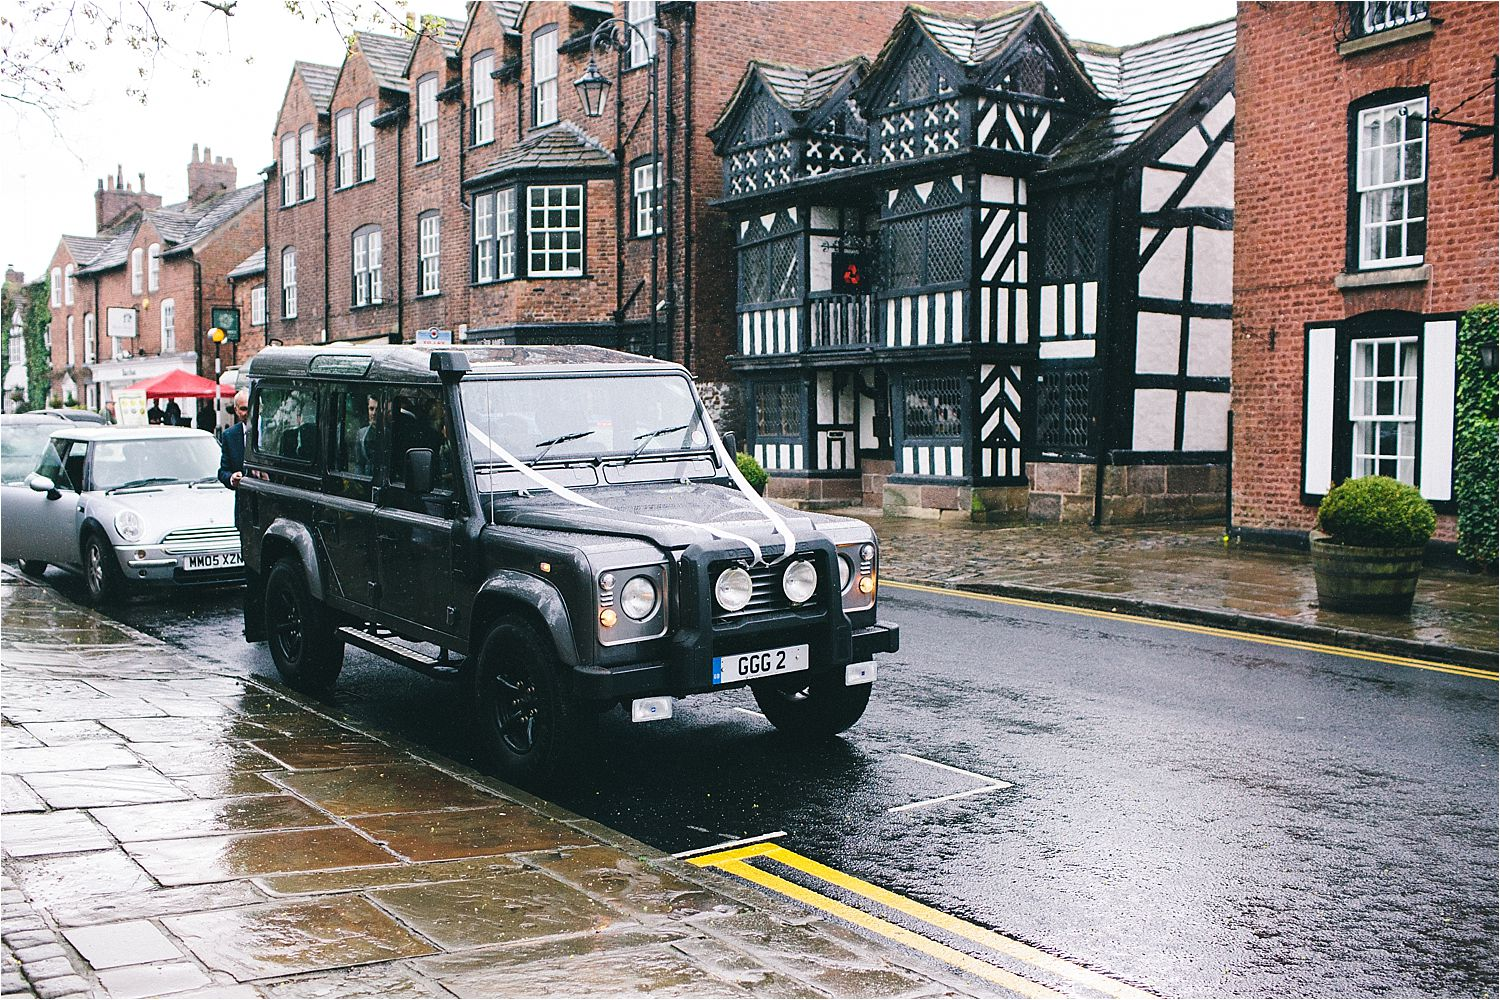 Landrover Defender waiting for bride and groom in Prestbury Cheshire